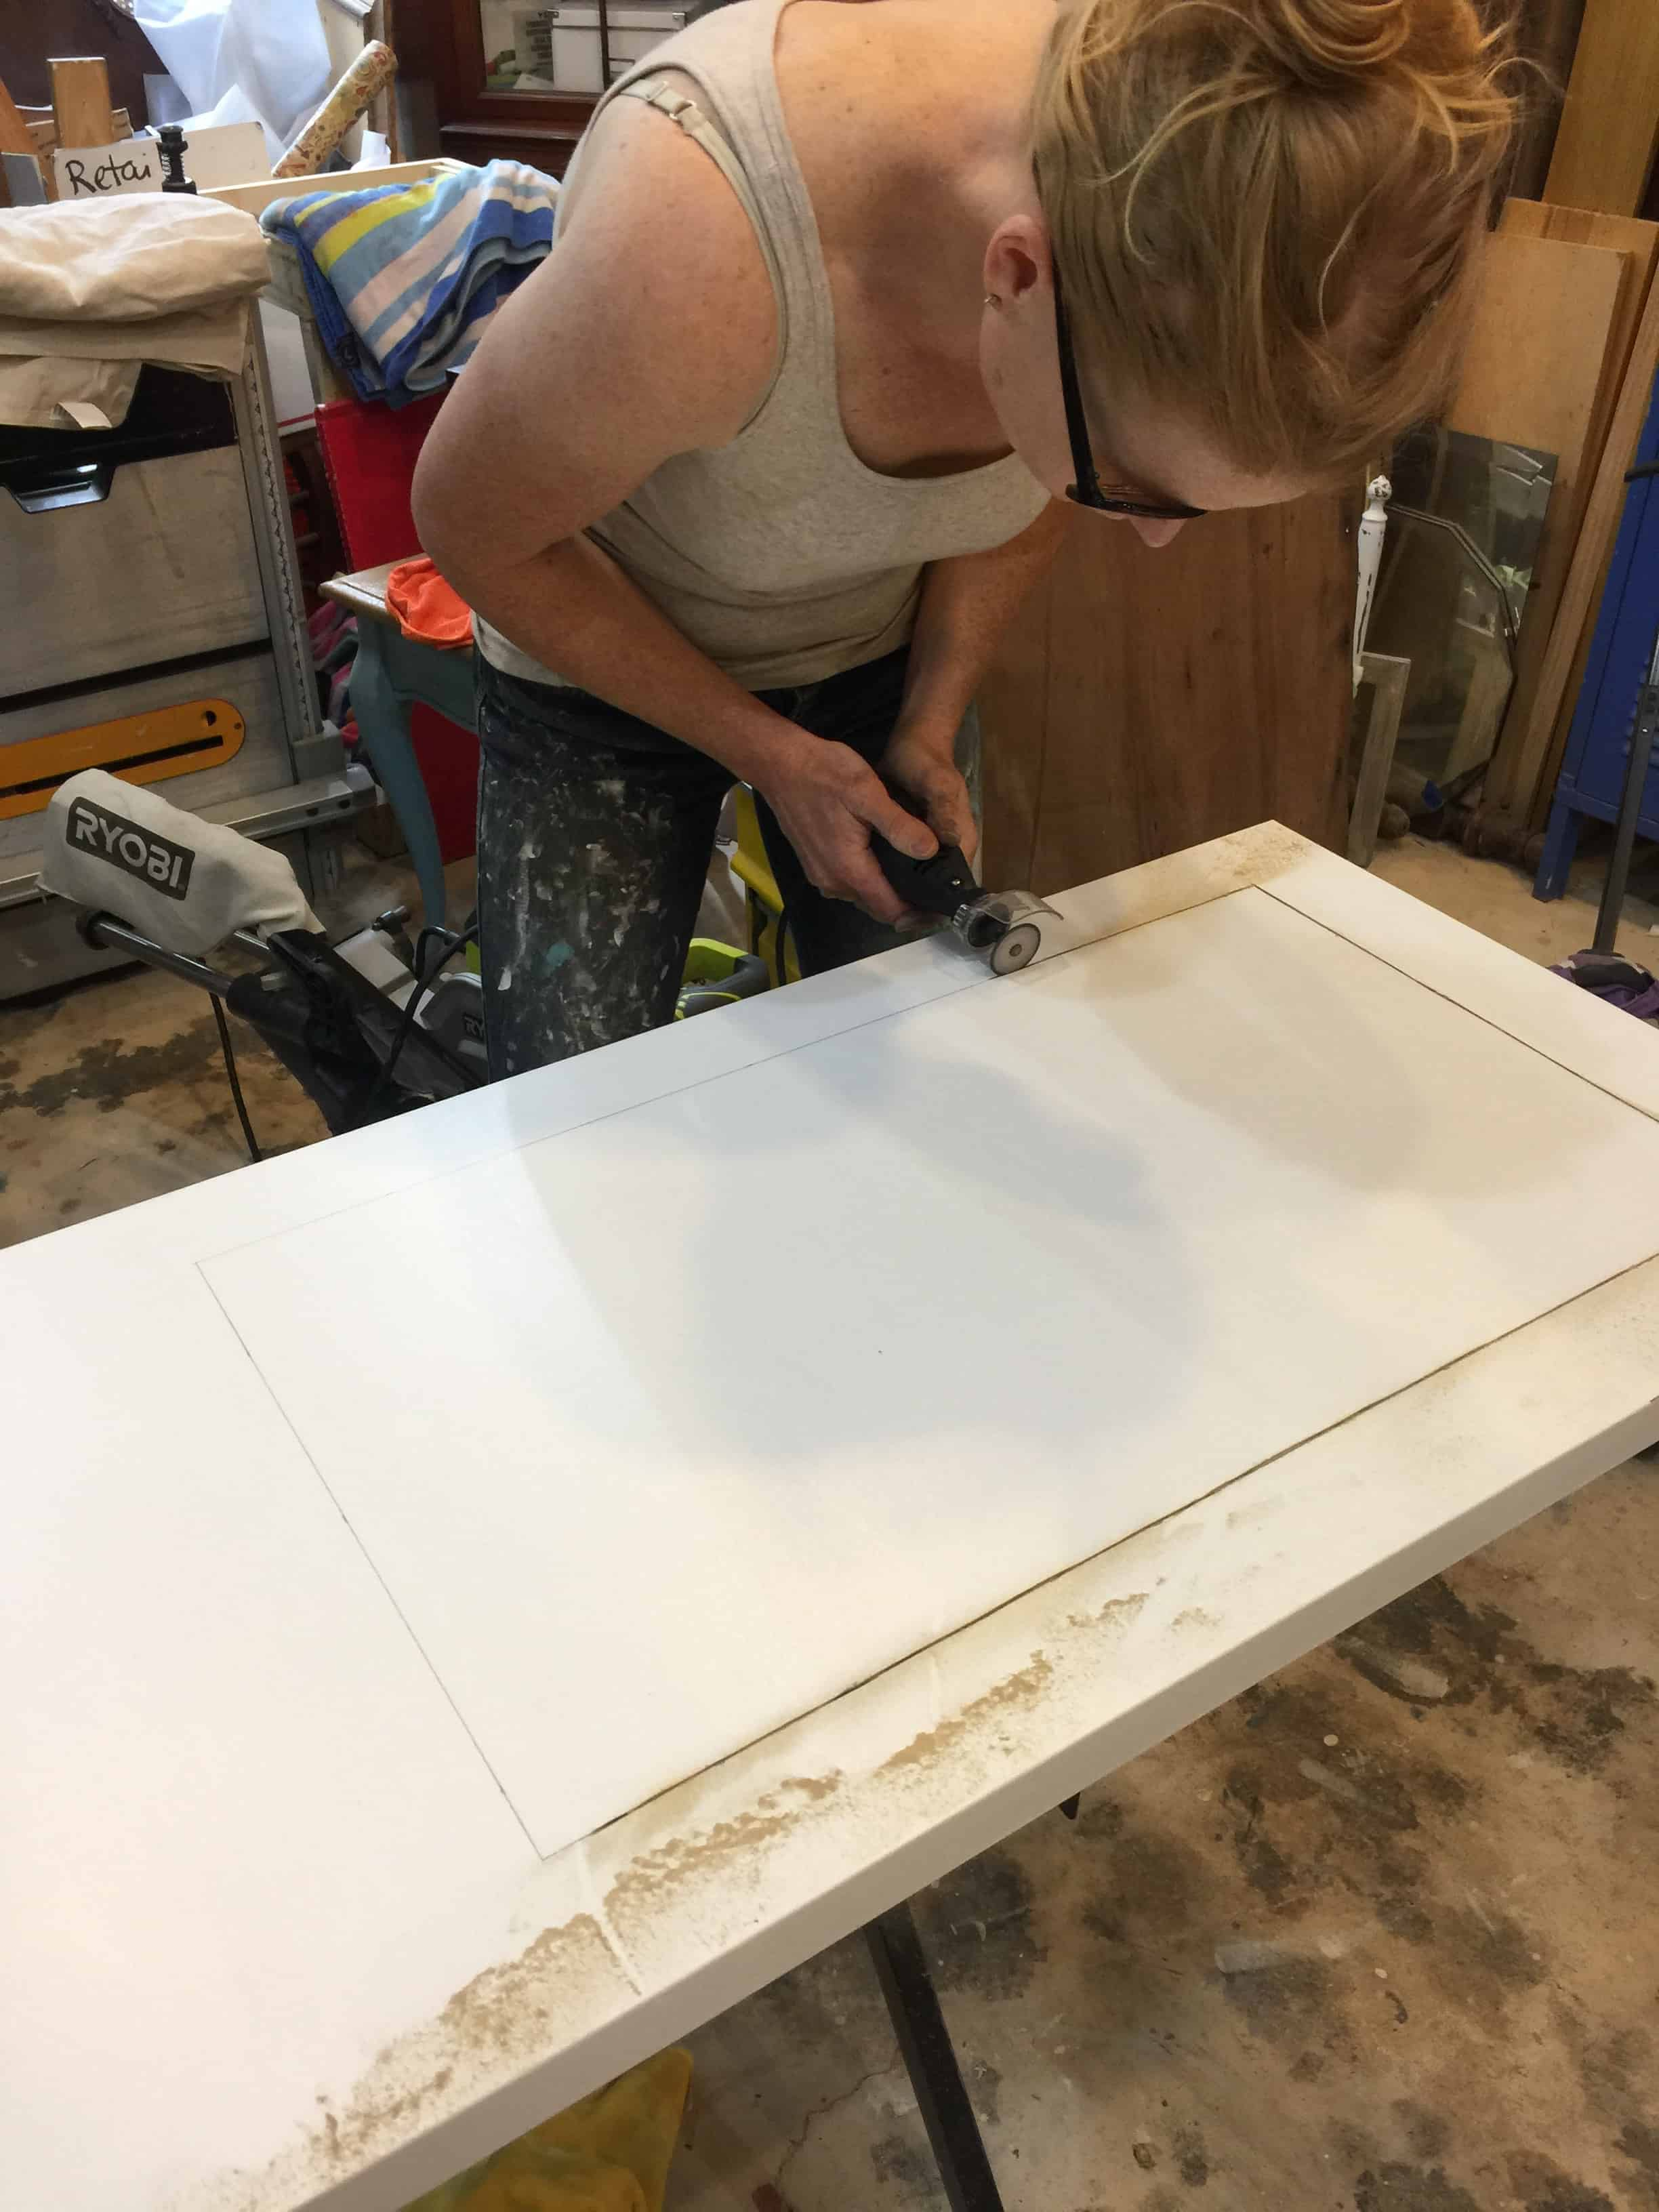 Saved by Scottie rv remodel door build cutting out window with Dremel